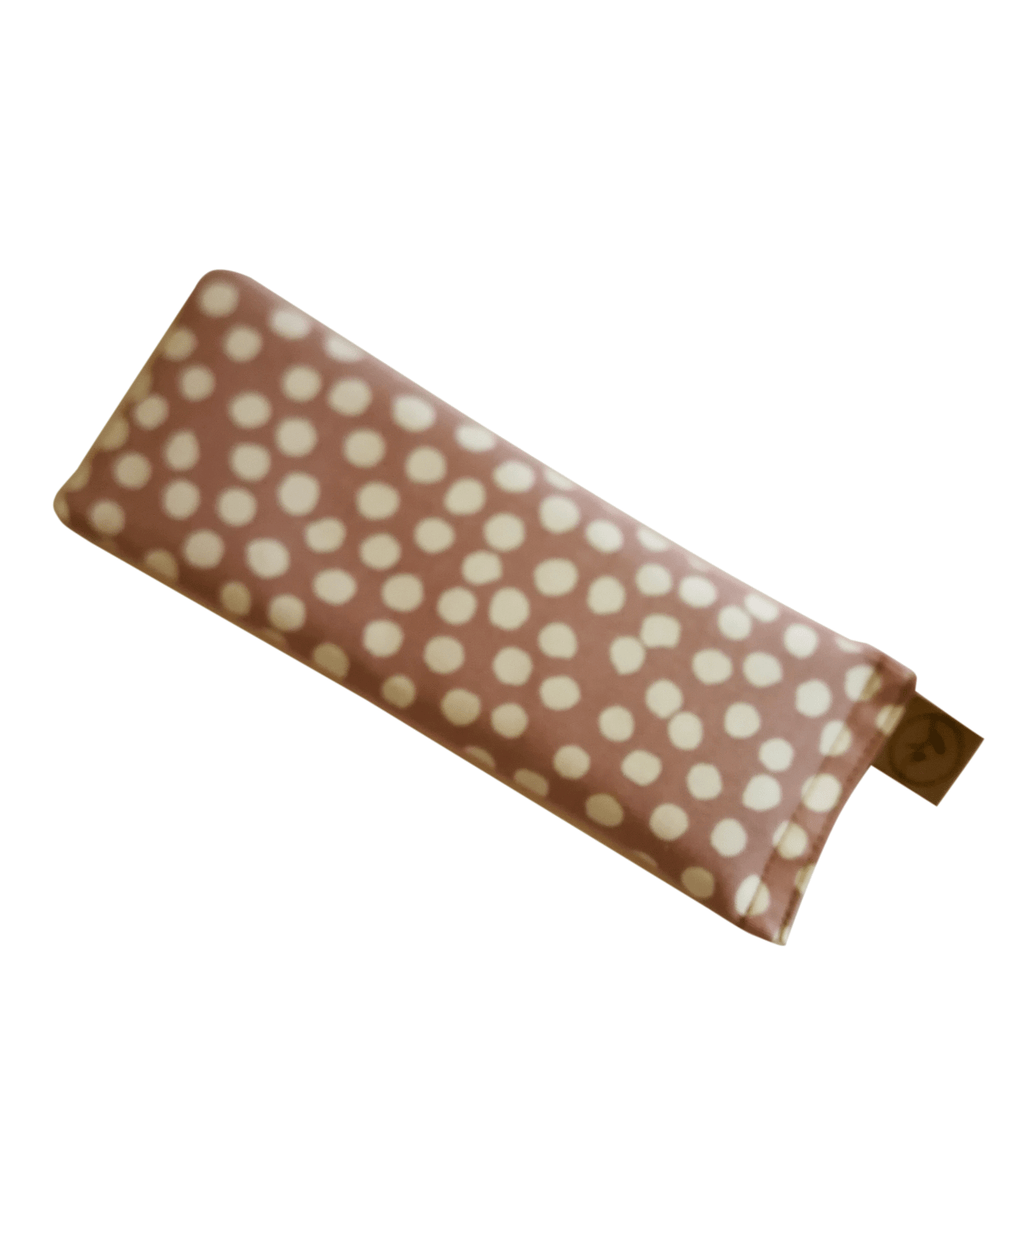 Sabine & Sparrow - Pastel Pink Dots Eye Pillow - last minute gift idea - melbourne